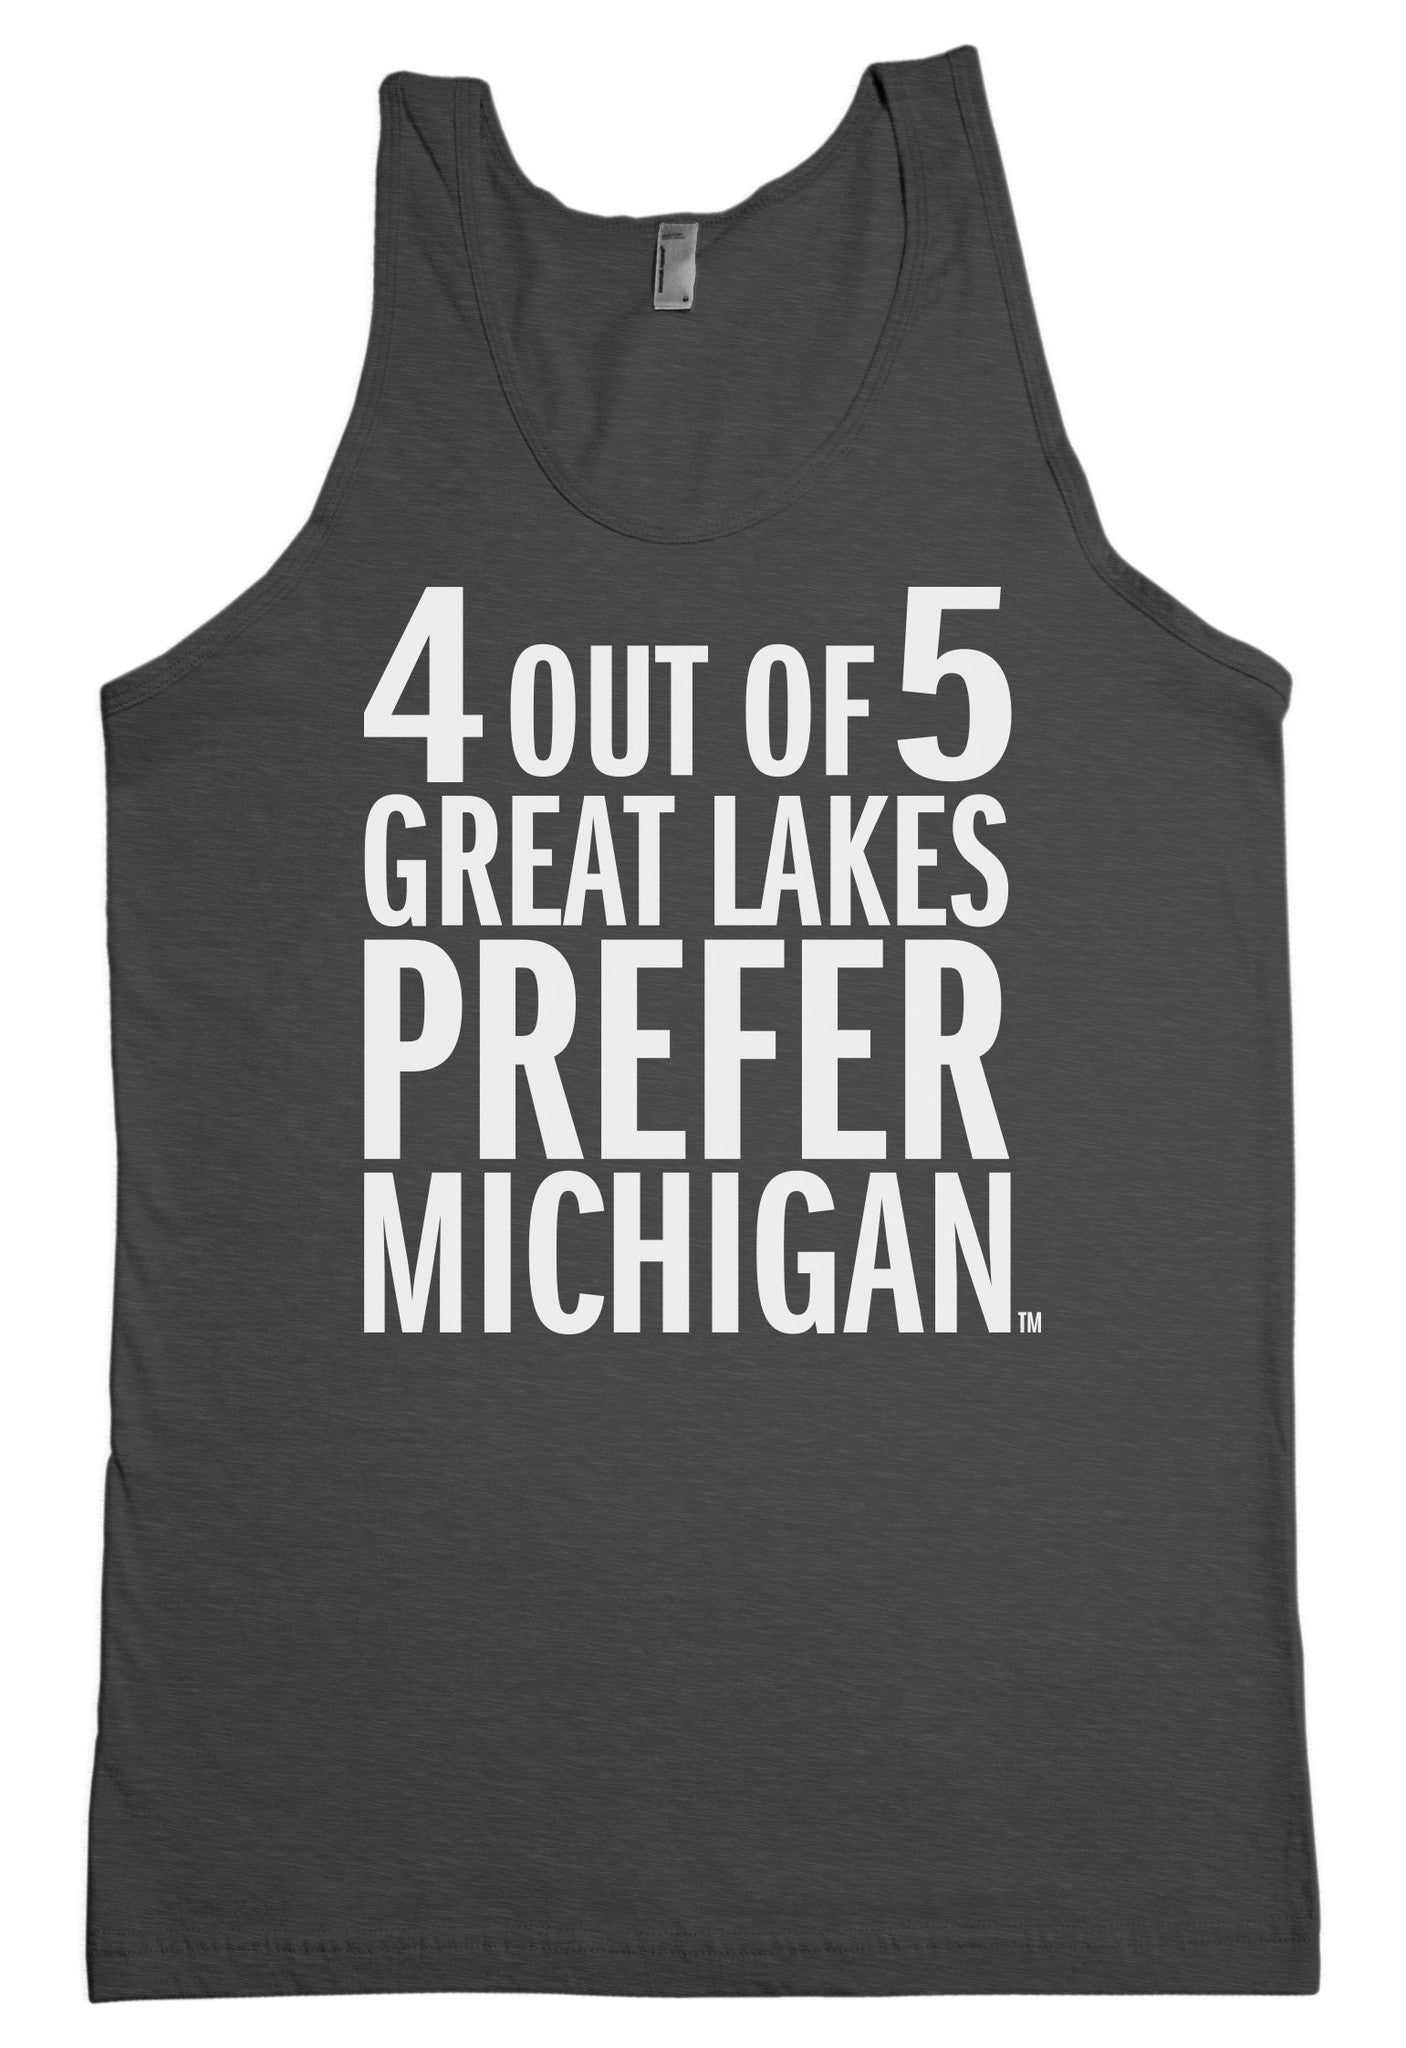 michigan guys This site provides michigan golf course reviews to help you choose (or find)a course or plan an outing.